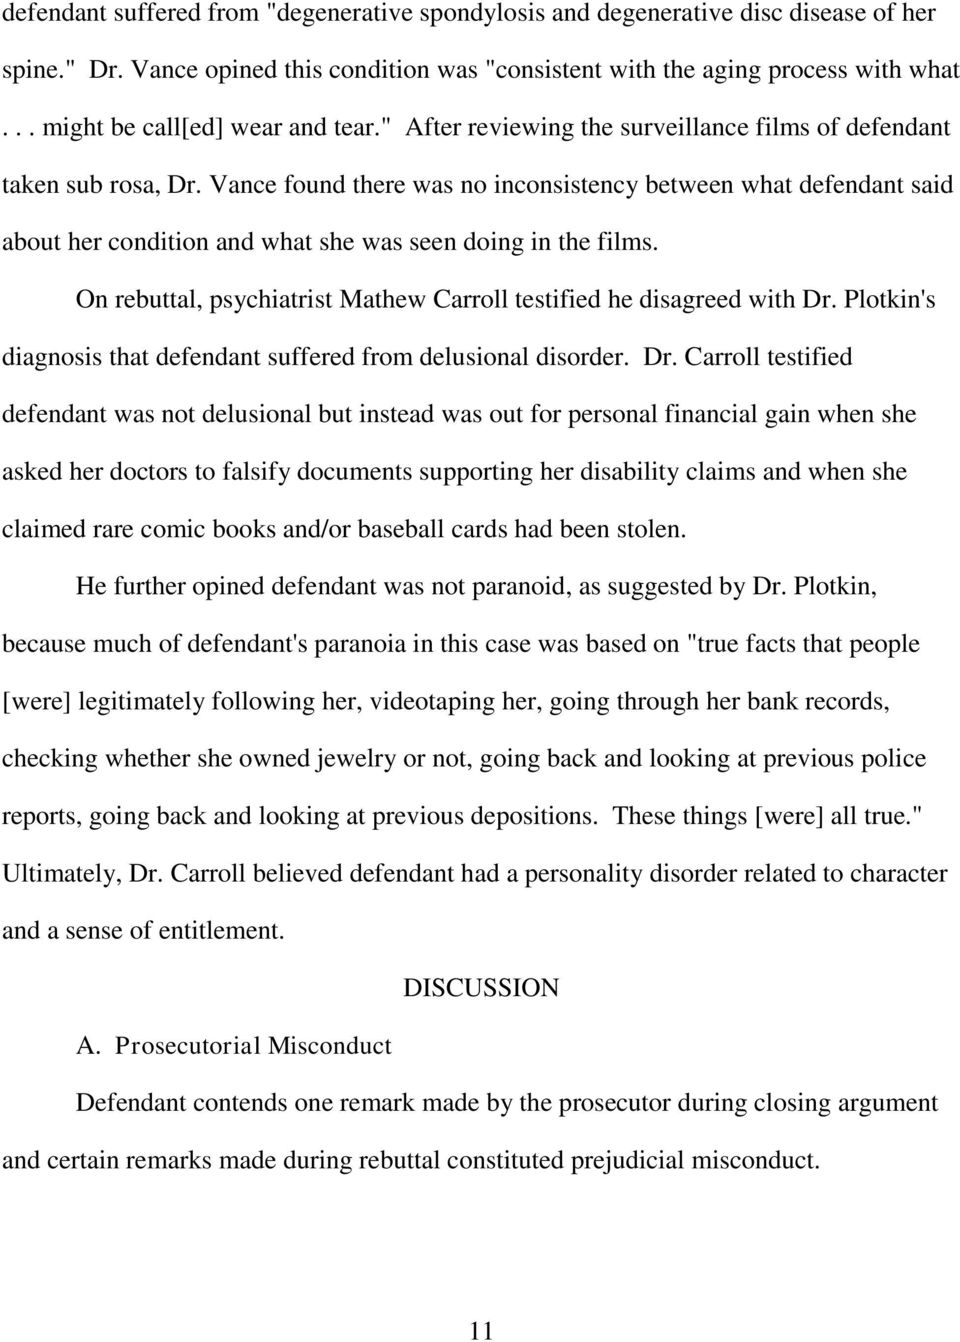 Vance found there was no inconsistency between what defendant said about her condition and what she was seen doing in the films.